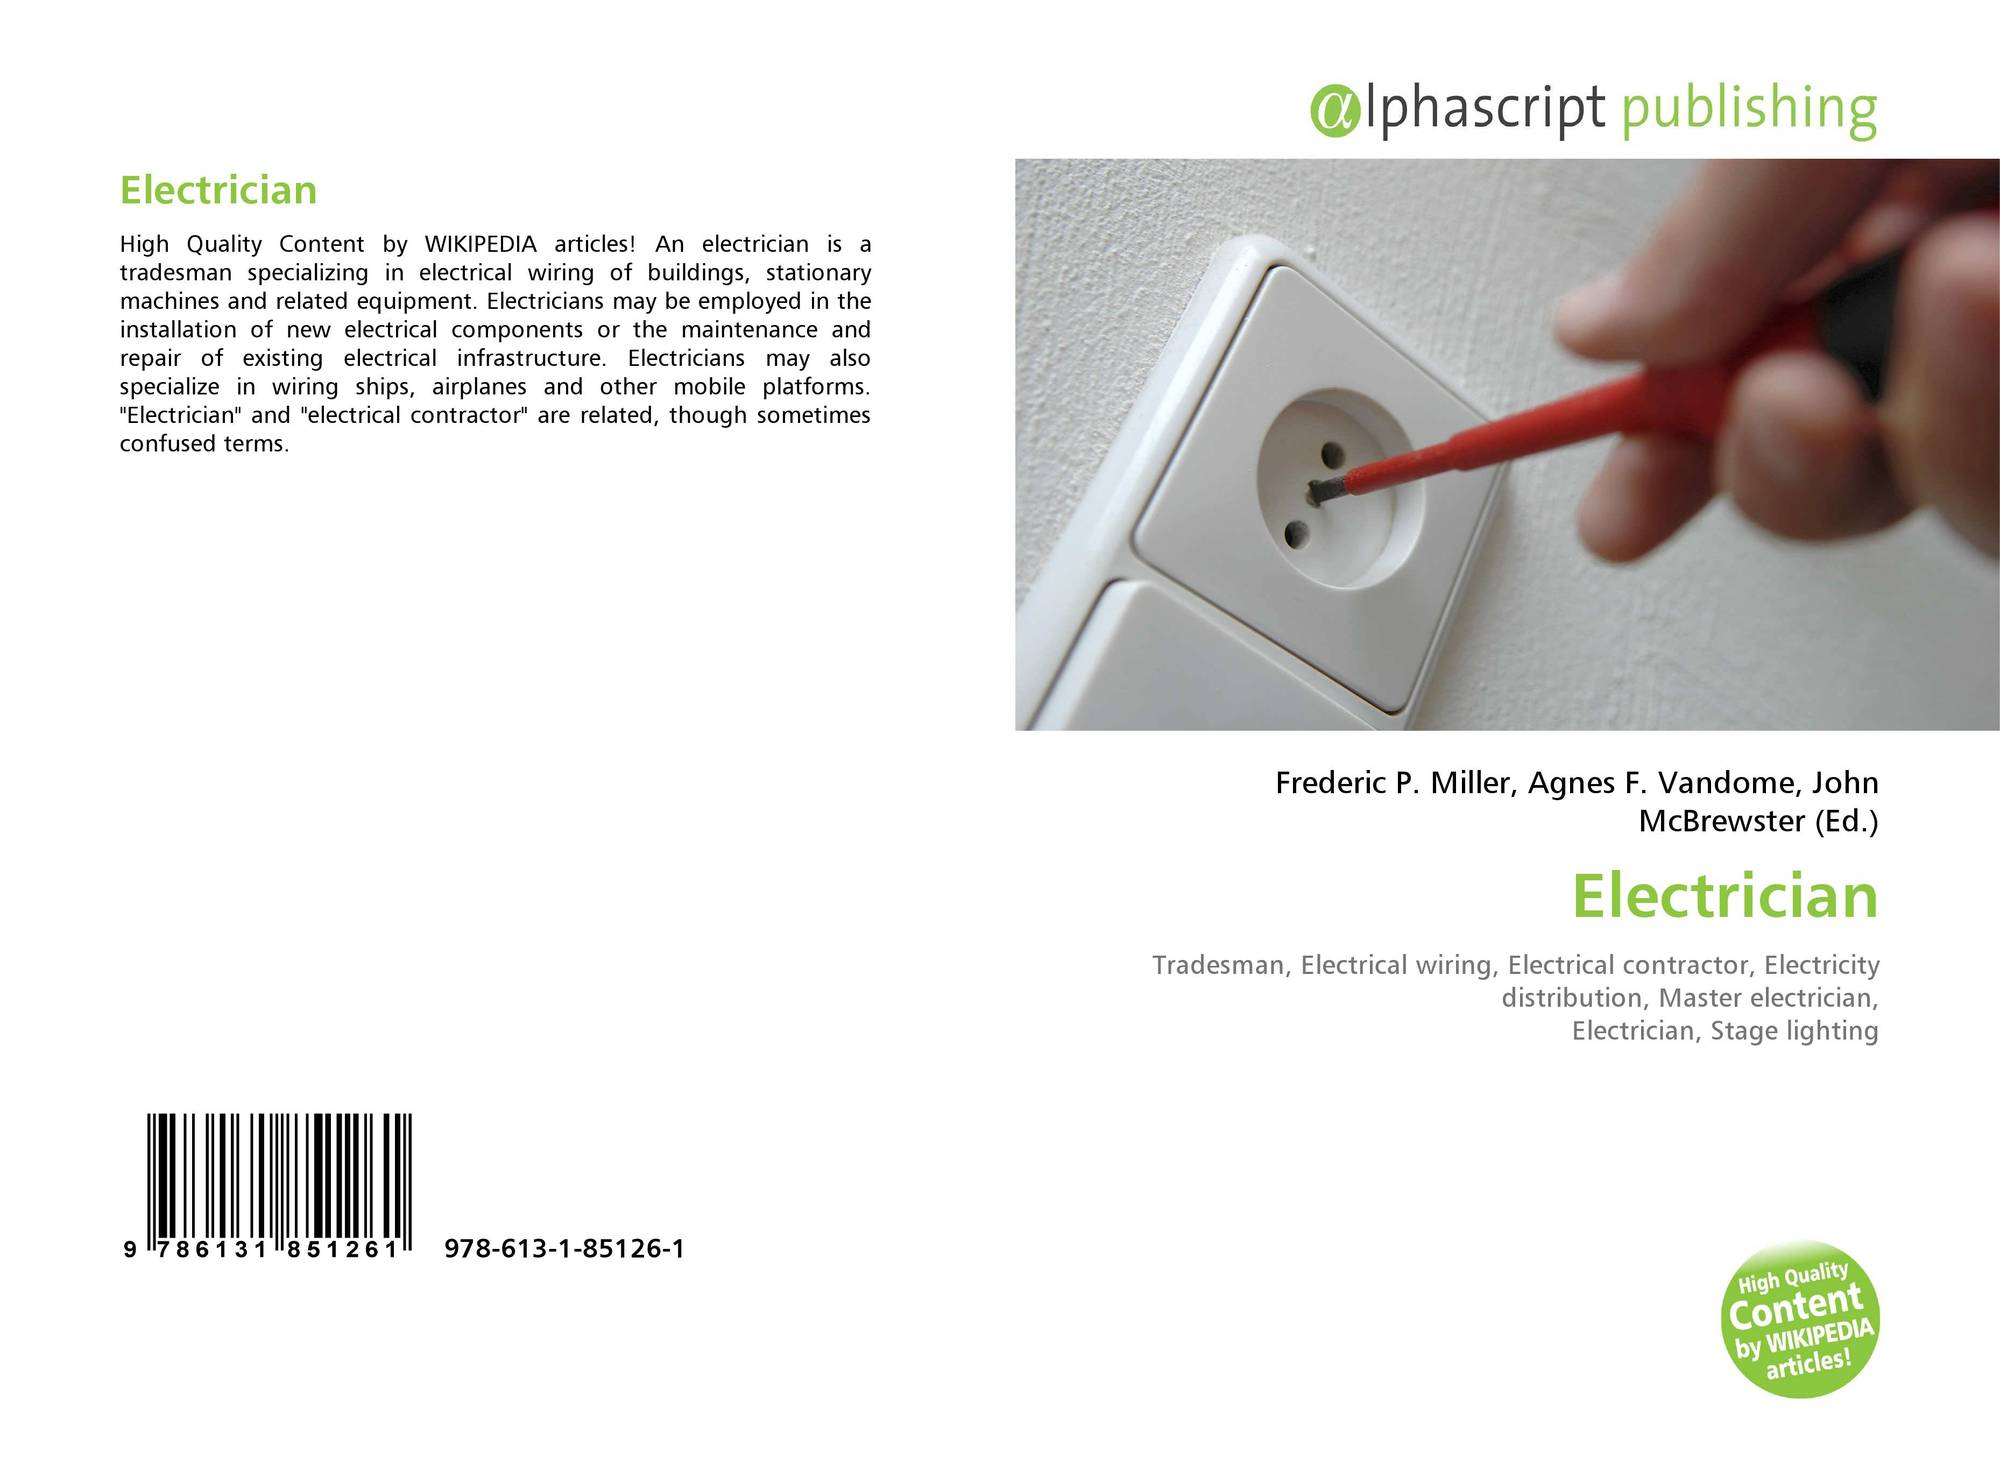 Electrician 978 613 1 85126 6131851263 9786131851261 Electrical Wiring Terms